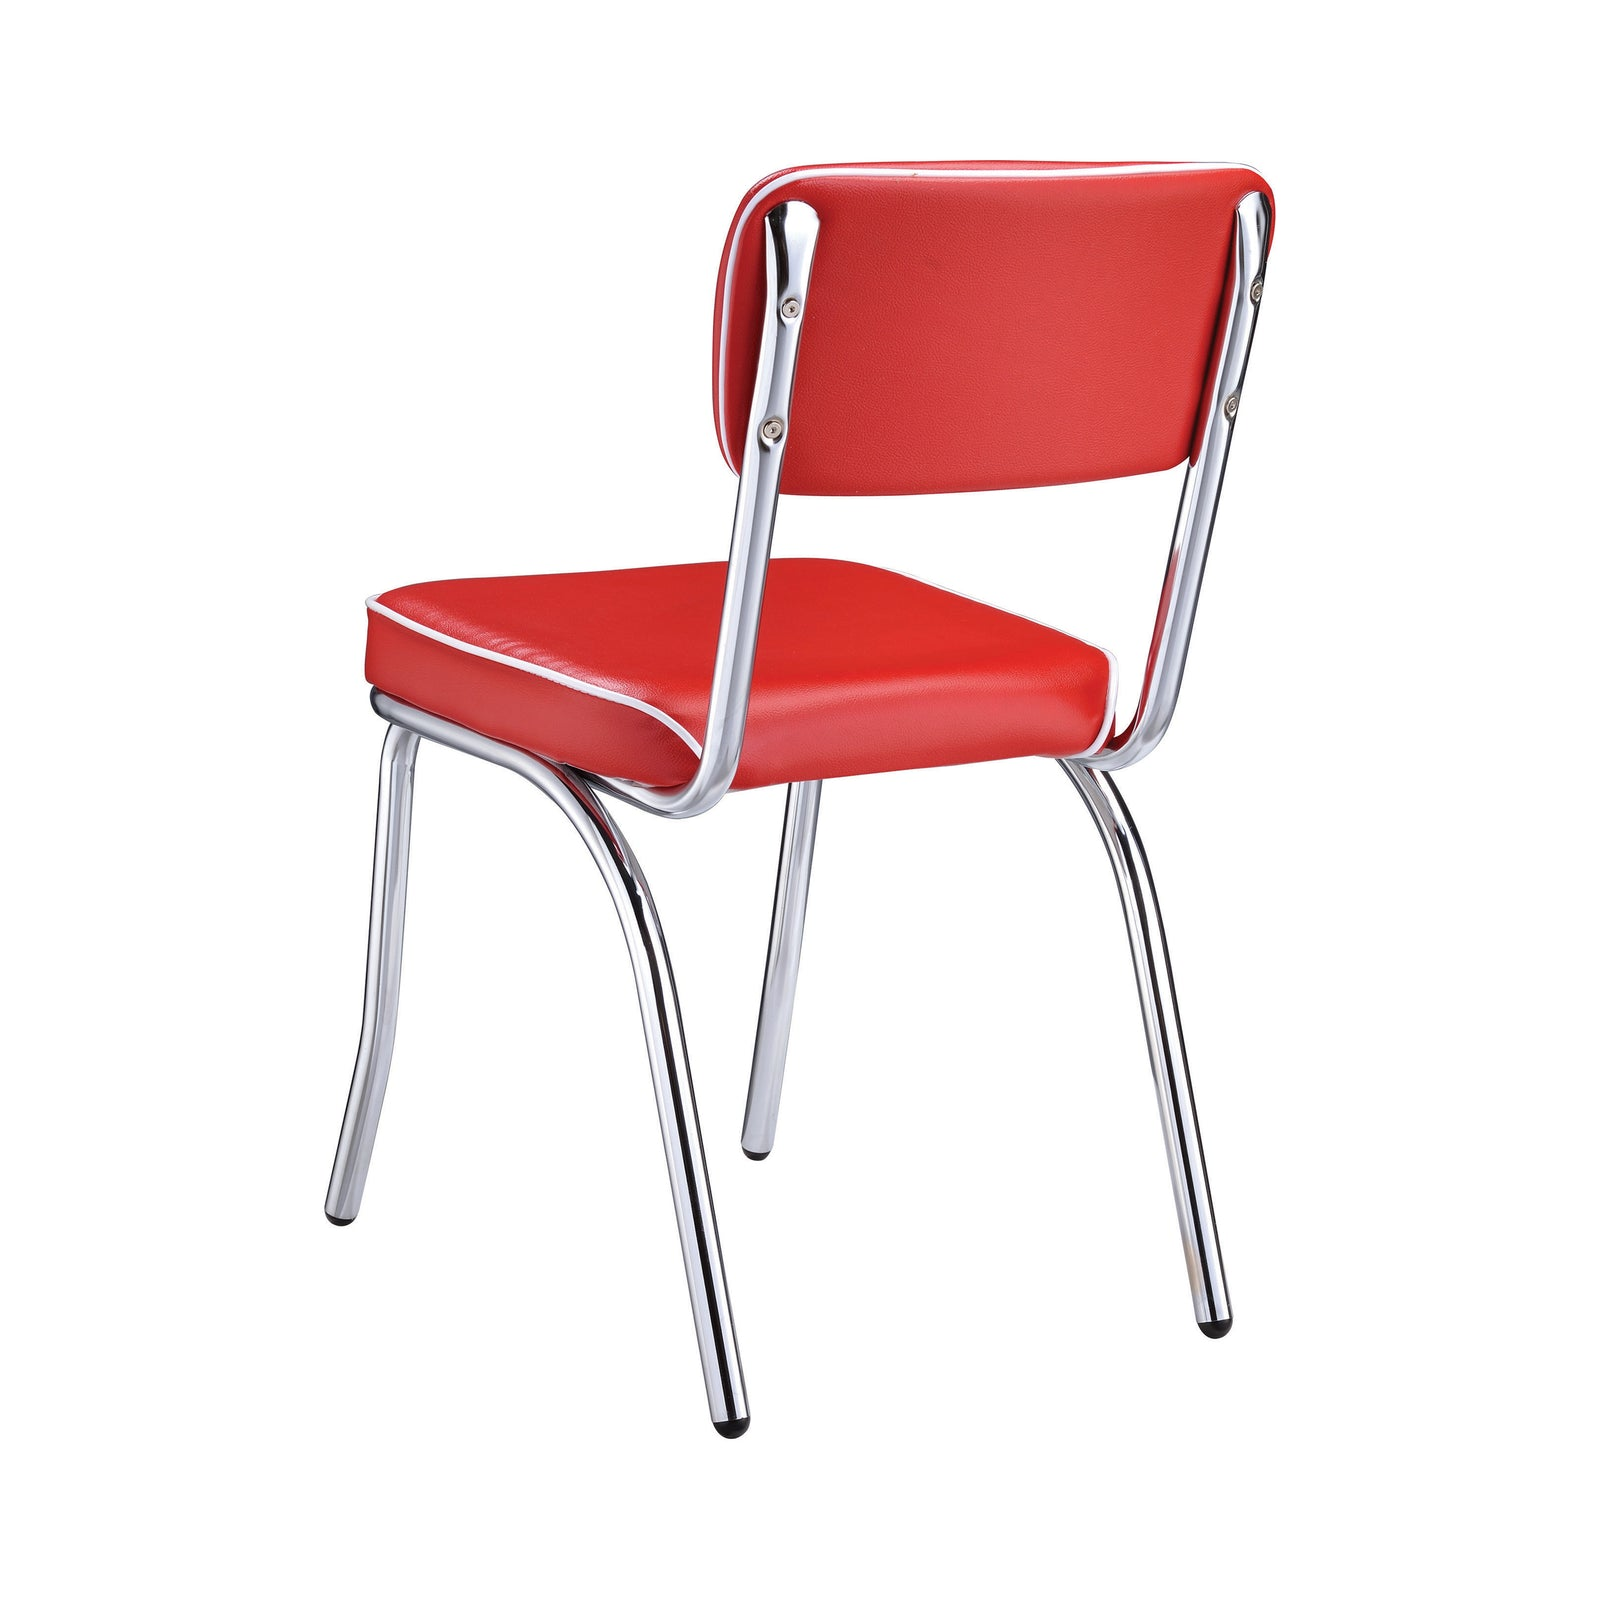 Coaster 2450R | Modern Open Back Red Cushion Dining Side Chairs Chrome Plated Set Of 2